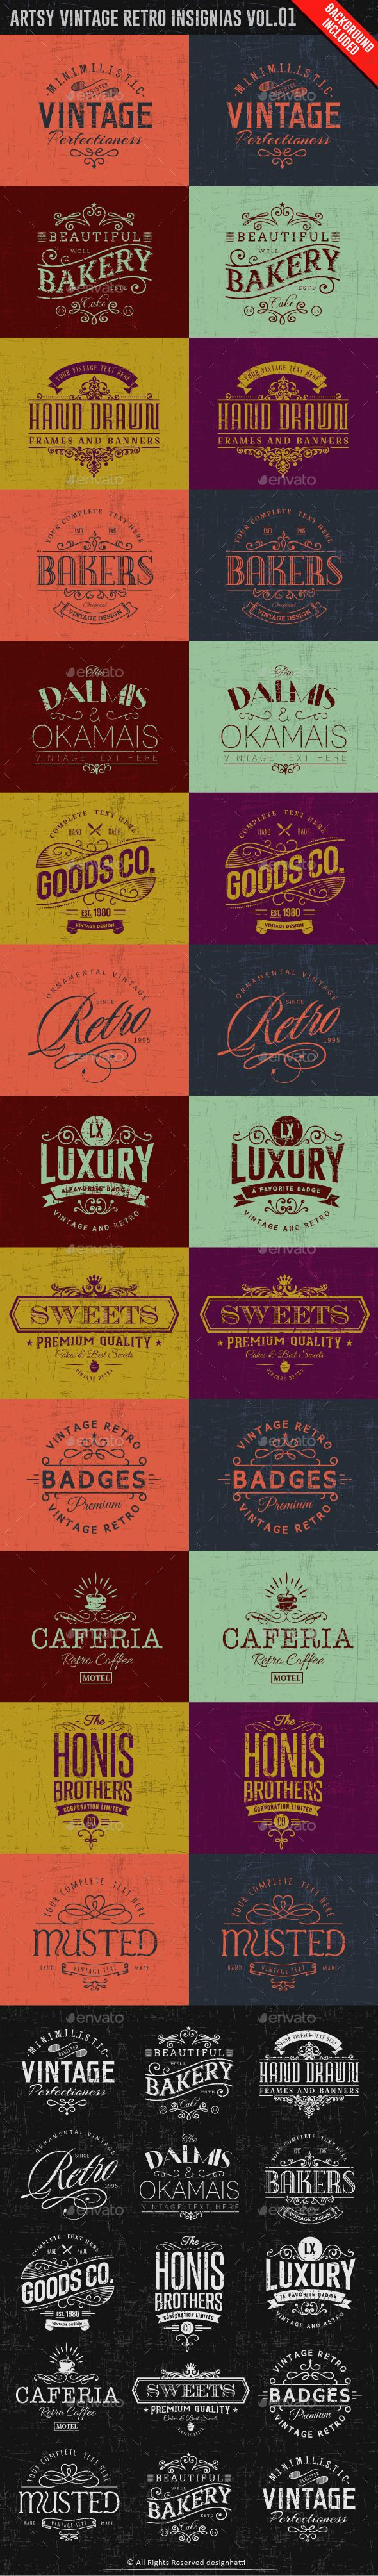 Artsy Vintage Retro Insignia and Logos | Buy and Download: http://graphicriver.net/item/artsy-vintage-retro-insignia-and-logos-vol01/9945396?ref=ksioks